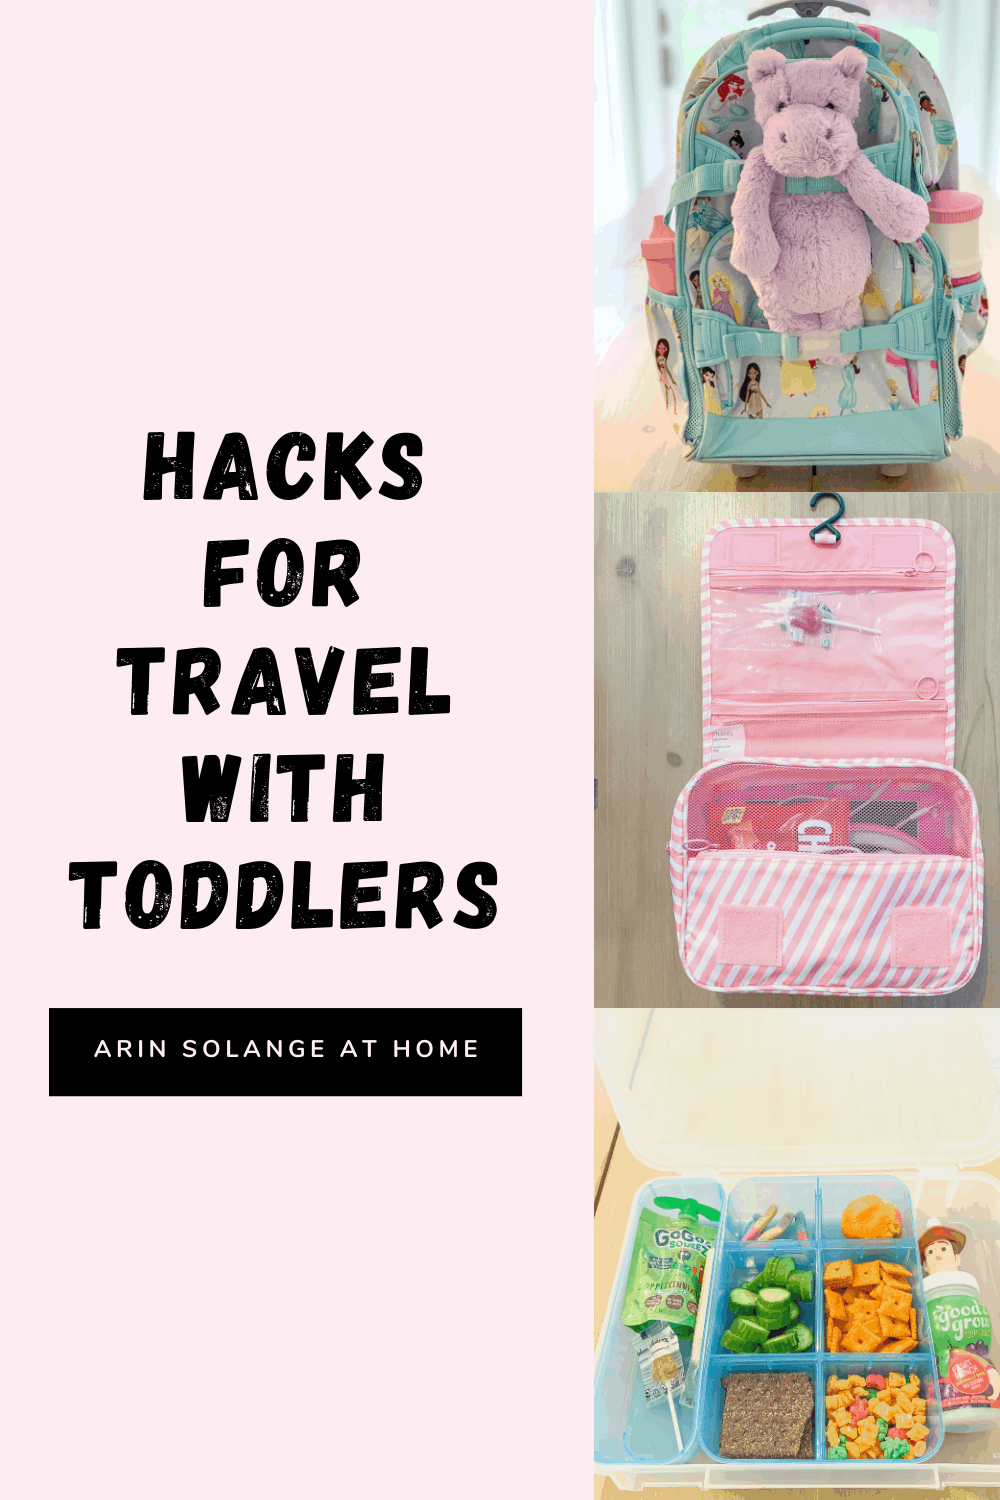 Hacks for Traveling with Toddlers